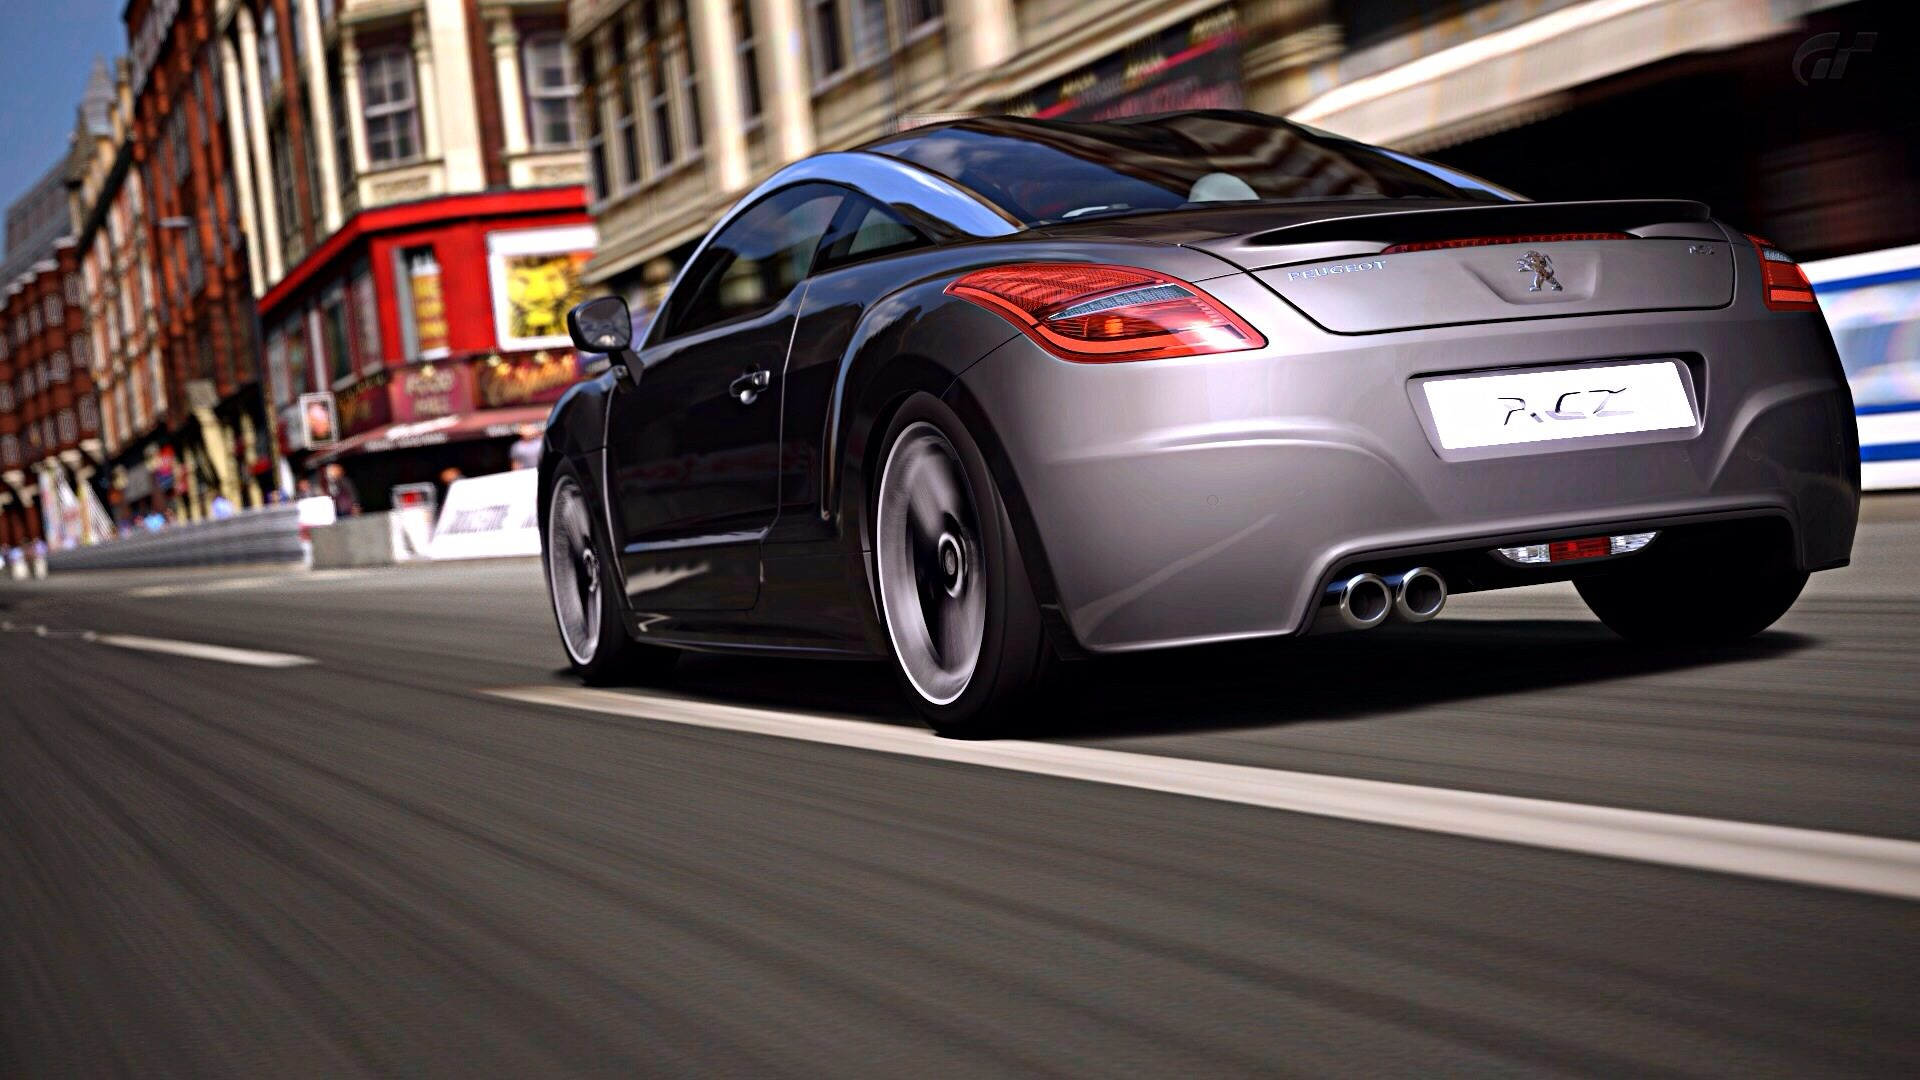 Peugeot RCZ London (GTP Pic of the day)(3).jpg